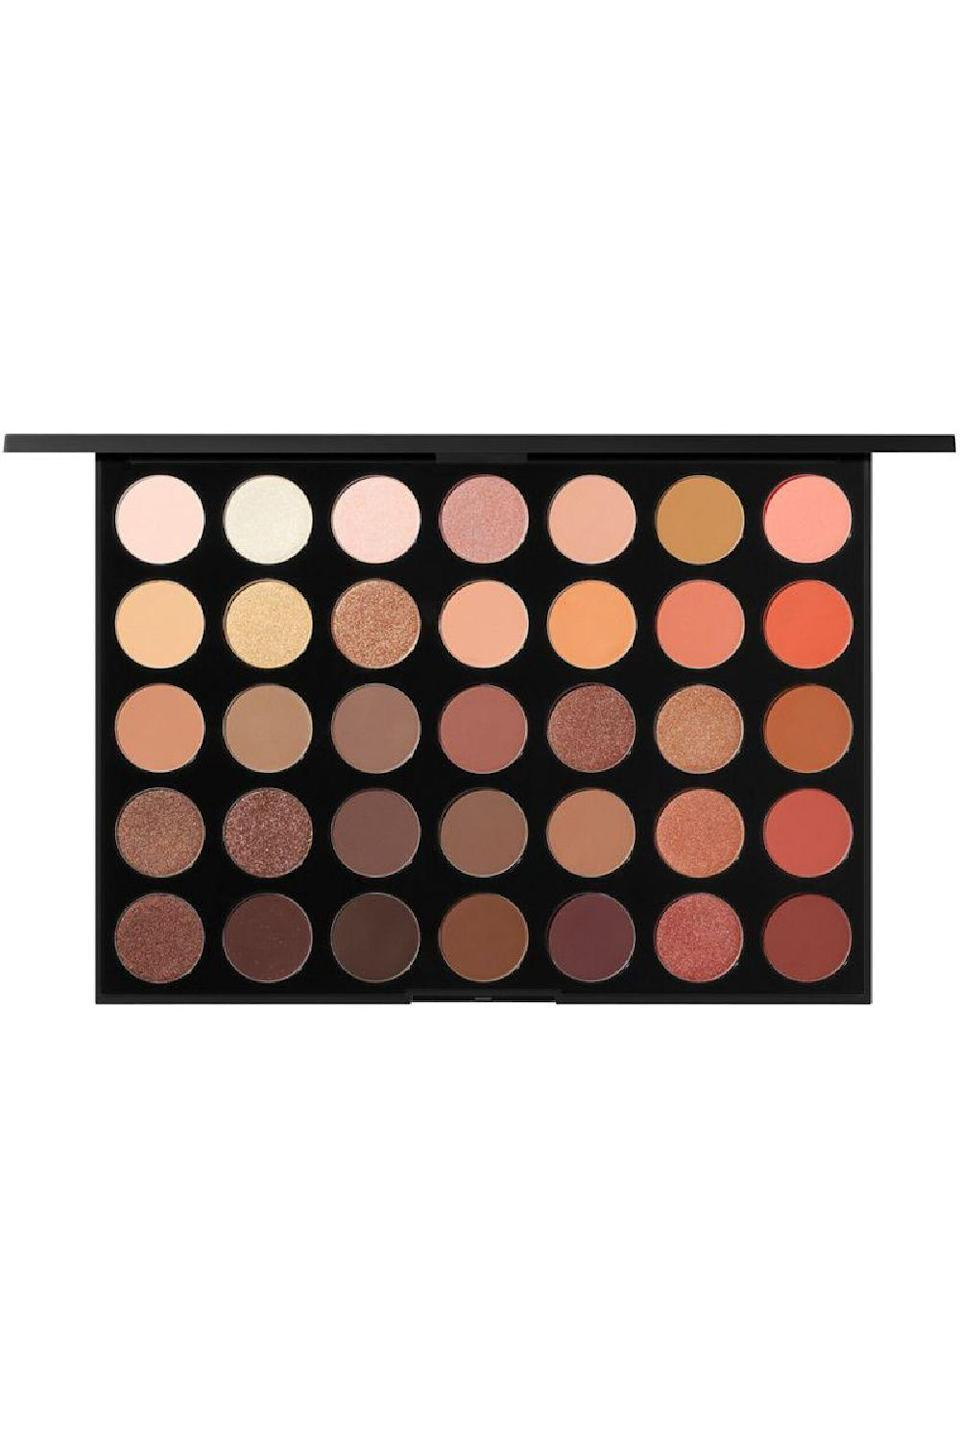 """<p><strong>Morphe</strong></p><p>ulta.com</p><p><strong>$26.00</strong></p><p><a href=""""https://go.redirectingat.com?id=74968X1596630&url=https%3A%2F%2Fwww.ulta.com%2Fp%2F35o-supernatural-glow-artistry-palette-pimprod2024720&sref=https%3A%2F%2Fwww.cosmopolitan.com%2Fstyle-beauty%2Fbeauty%2Fg36596599%2Fbest-eyeshadow-palettes%2F"""" rel=""""nofollow noopener"""" target=""""_blank"""" data-ylk=""""slk:Shop Now"""" class=""""link rapid-noclick-resp"""">Shop Now</a></p><p>This one goes out to all my friends who snatch up all the browns, bronzes, golds, and champagne eyeshadows they can find. With this palette, we're talkin' <strong>35 glorious neutrals in matte and metallic formulas</strong>. If you own the 350 Nature Glow palette, it's time to upgrade it because this 2.o version now includes 11 new shades of brown and a pop of peach.</p>"""